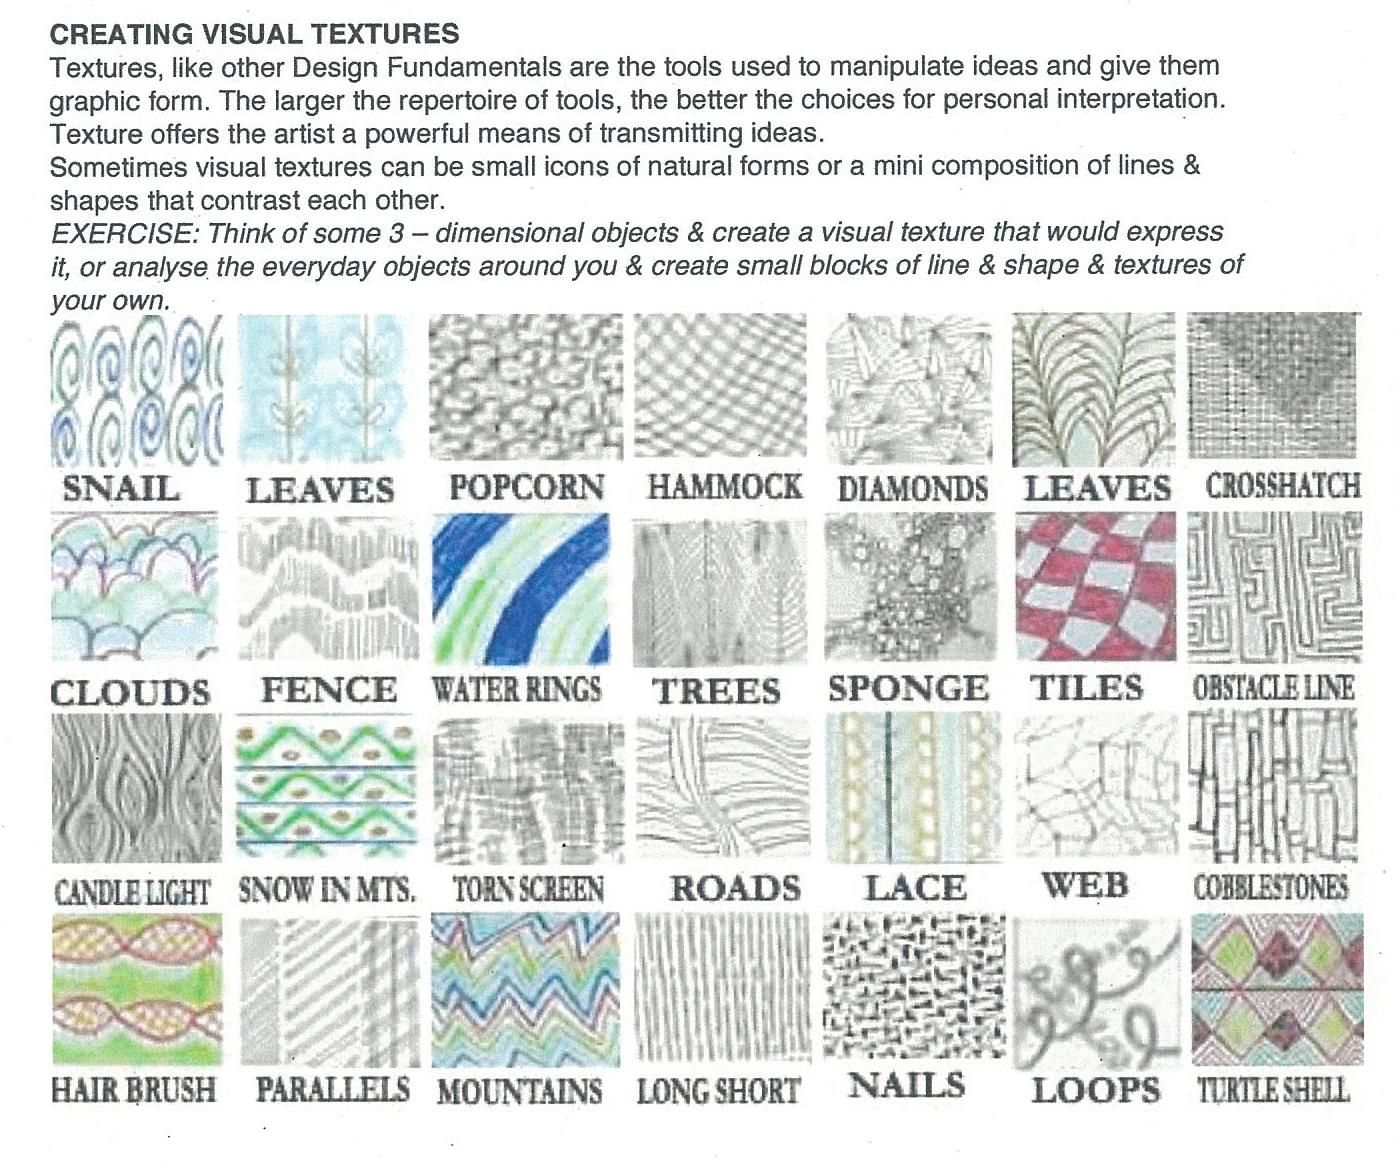 TEXTURE Visual texture, Elements of art definition